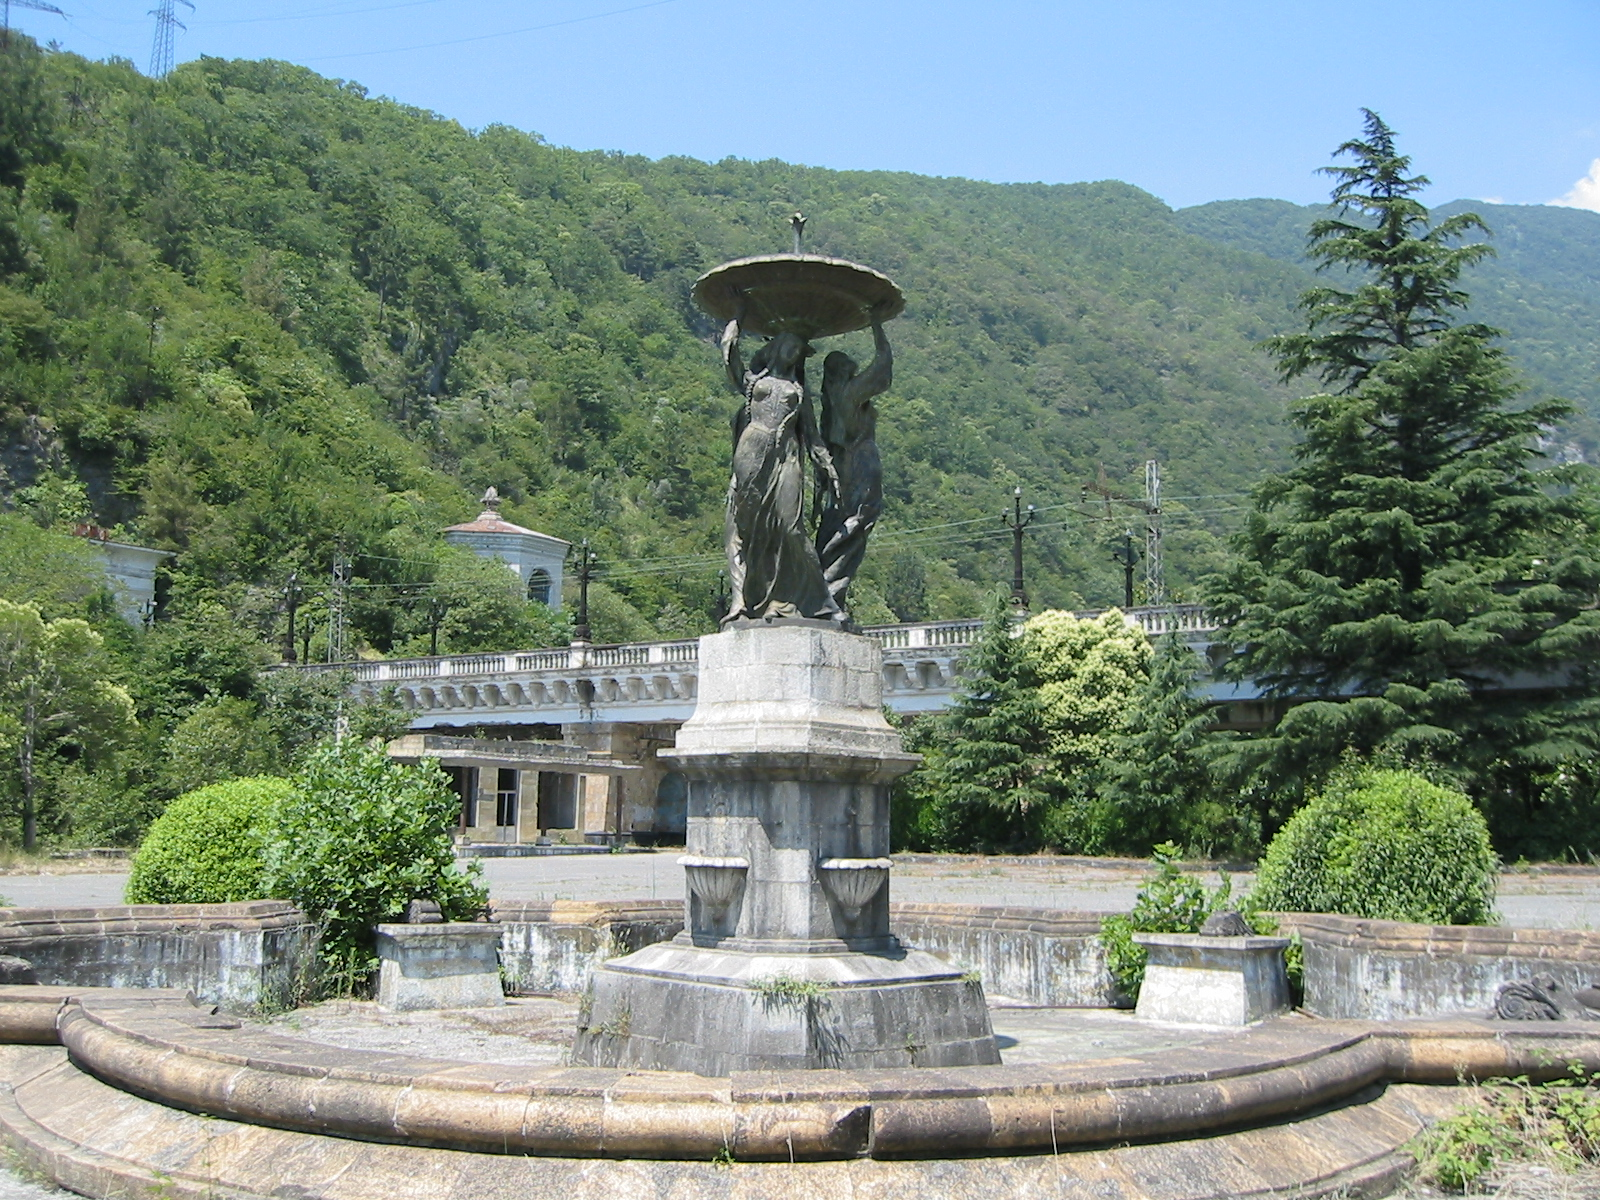 http://upload.wikimedia.org/wikipedia/commons/9/94/Gagra%2C_Abkhazia.jpg